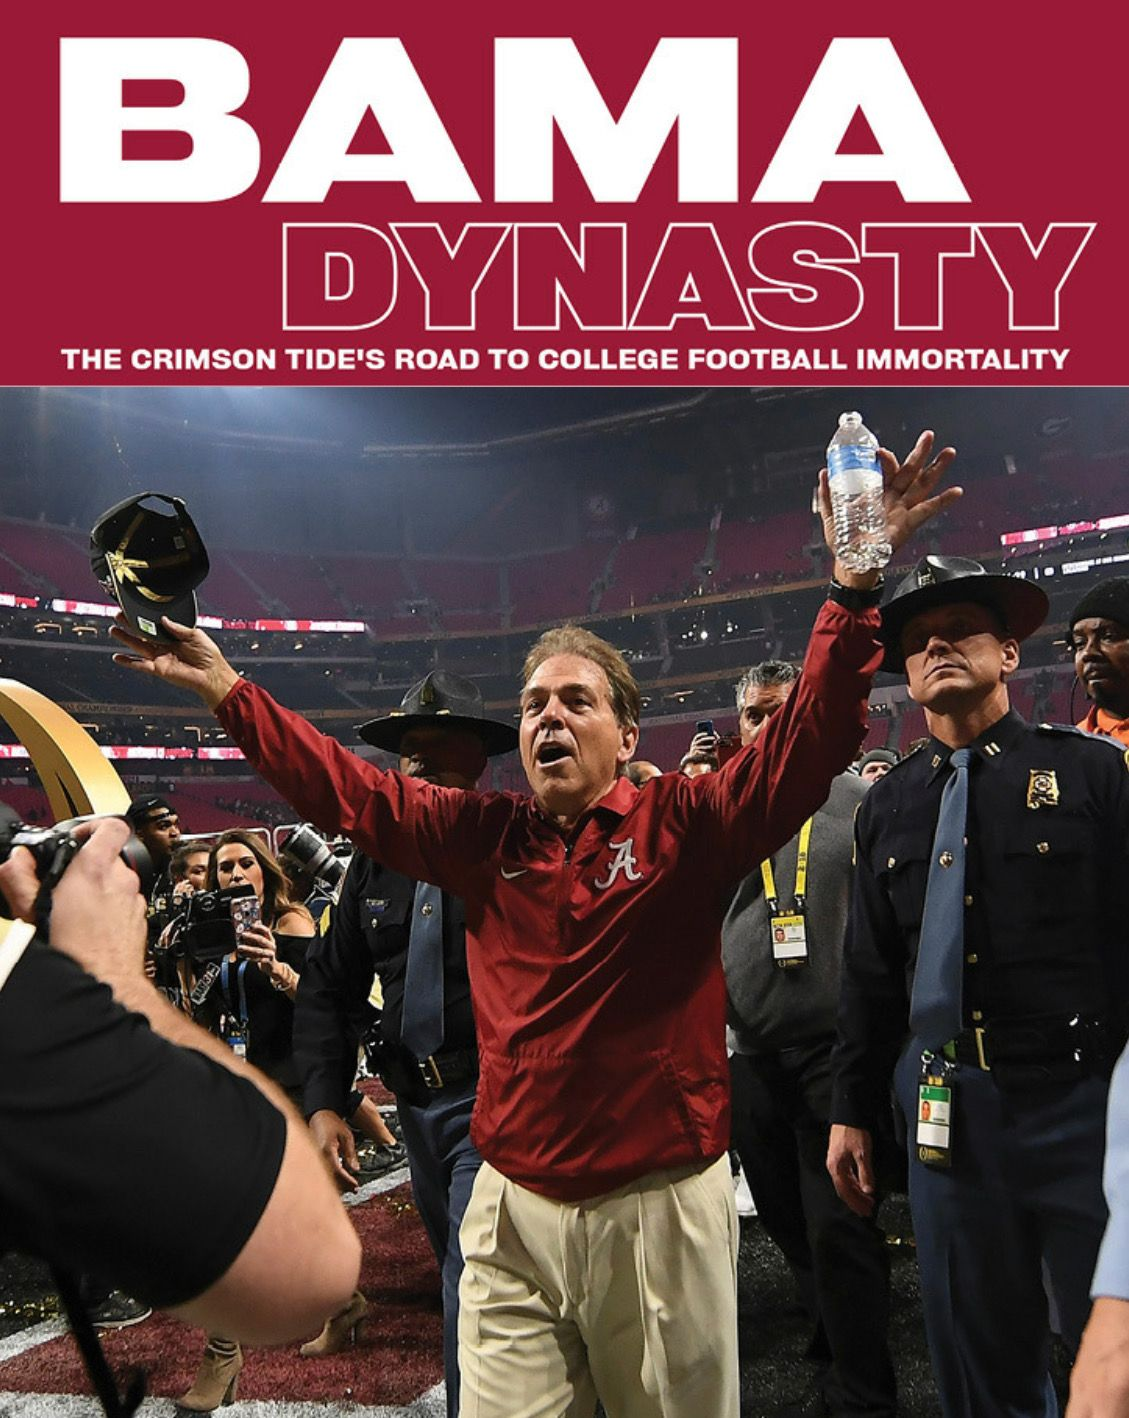 Bama dynasty back cover picture credit from the book